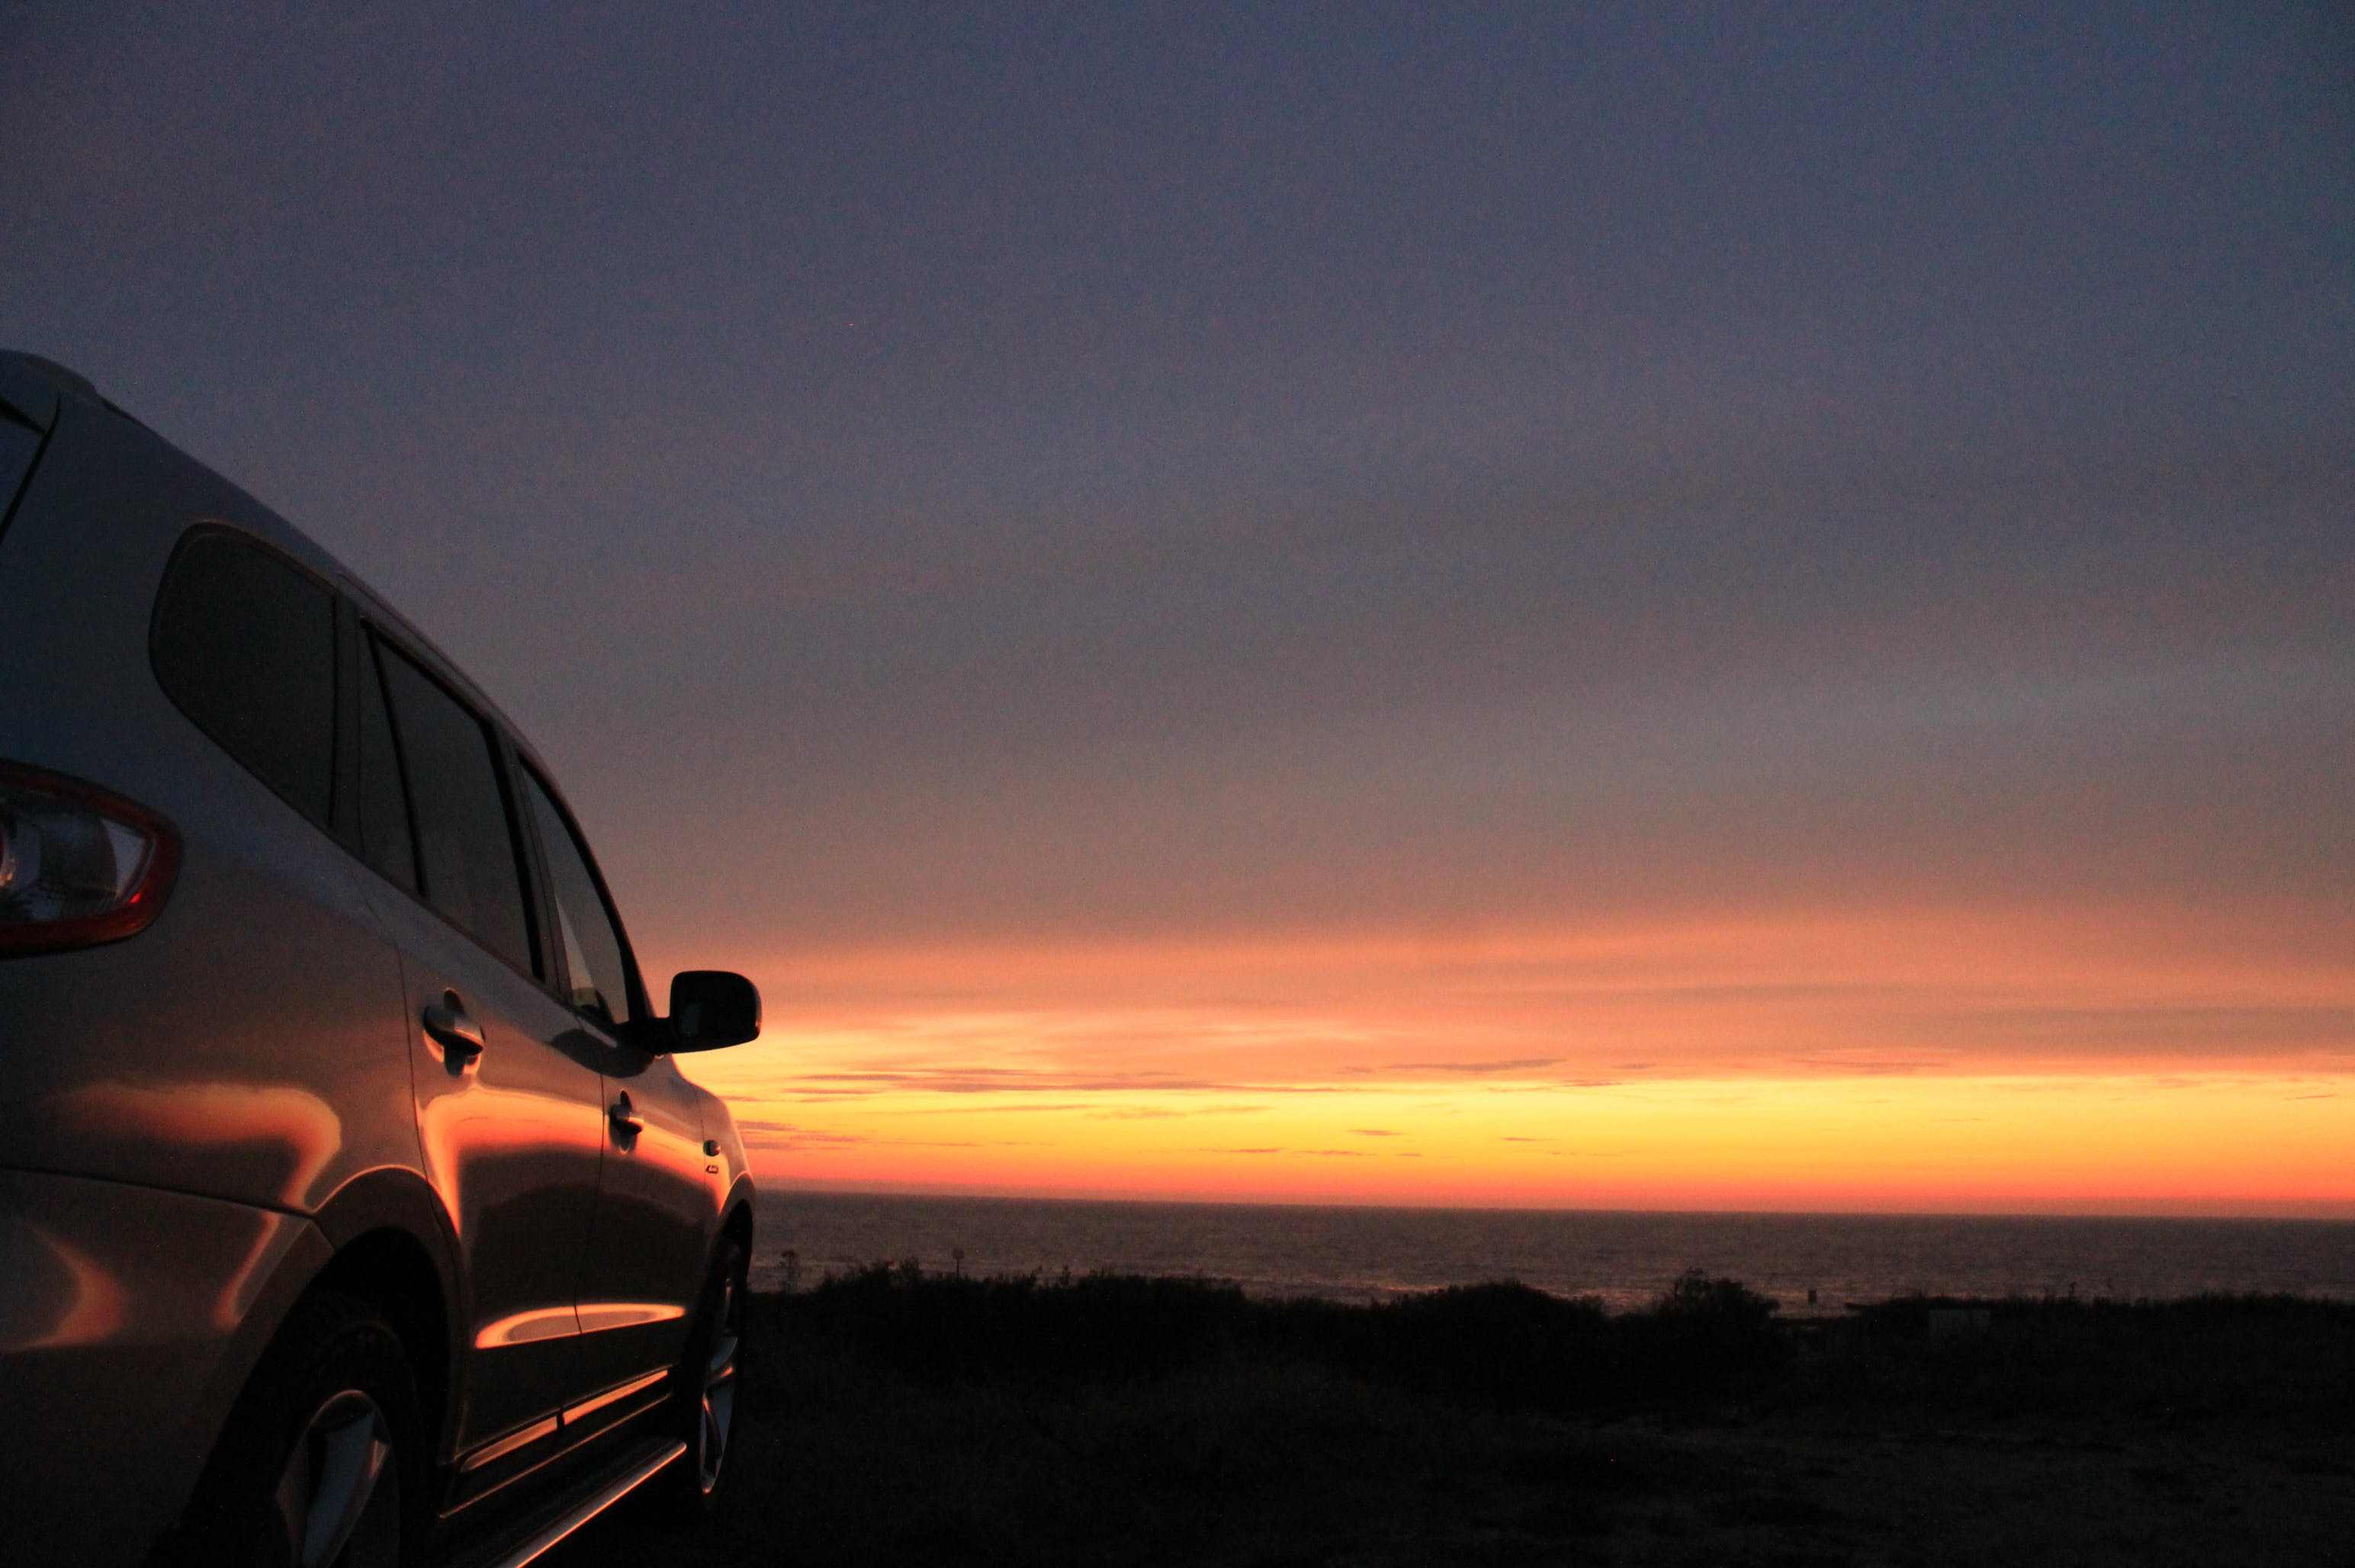 Free stock photo of sunset, romantic, car, roadtrip